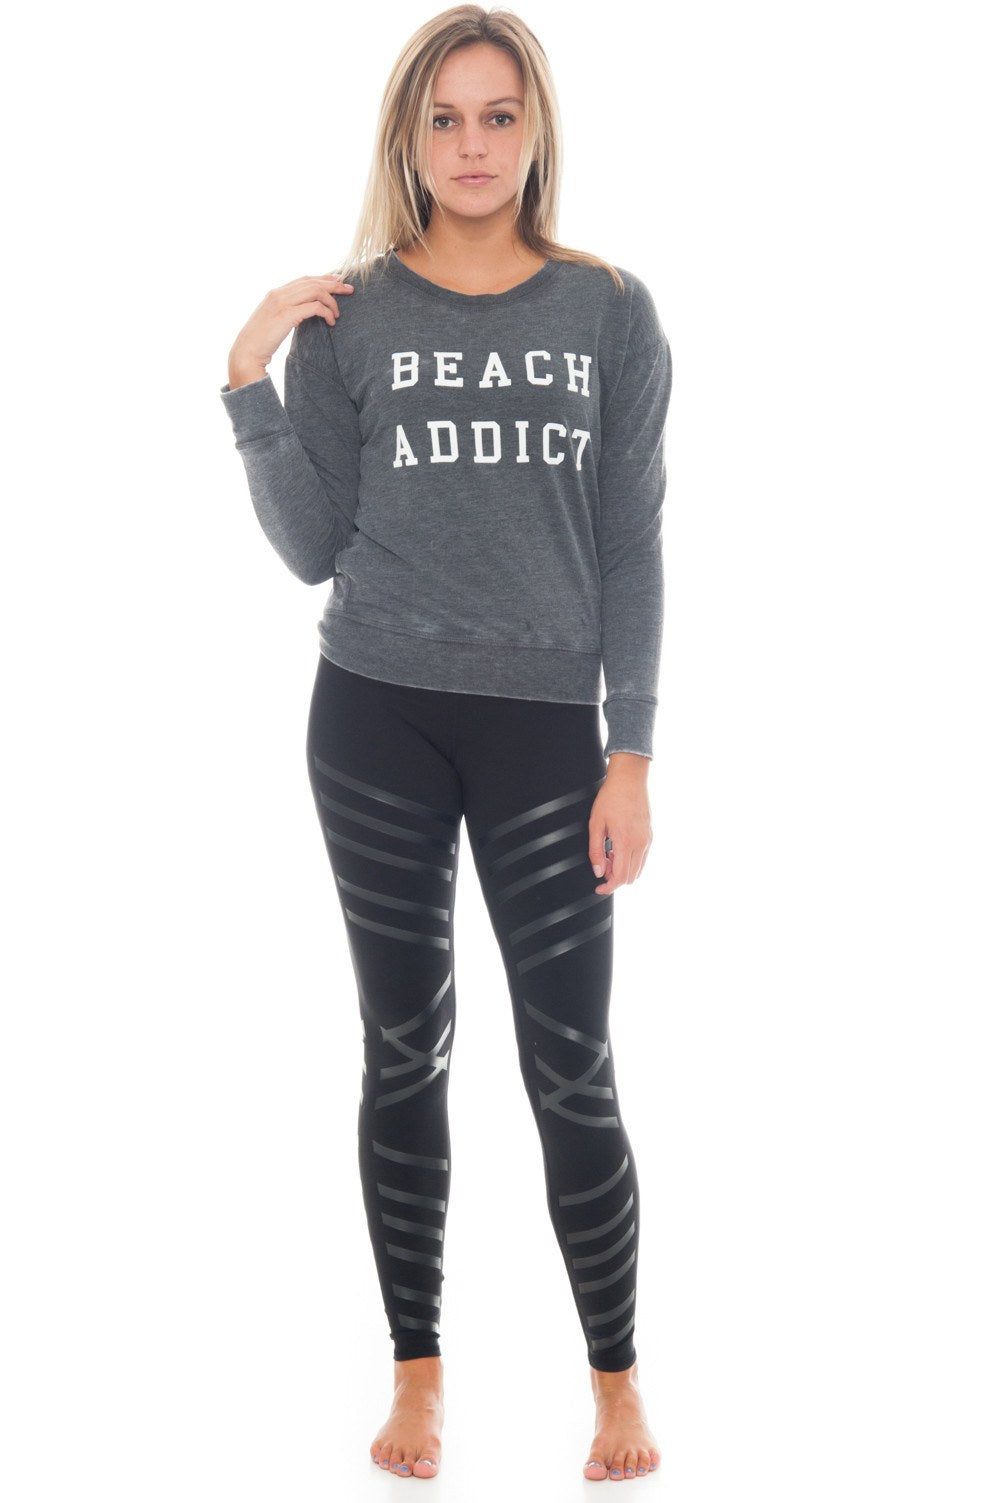 Sweater - Beach Addict - 2